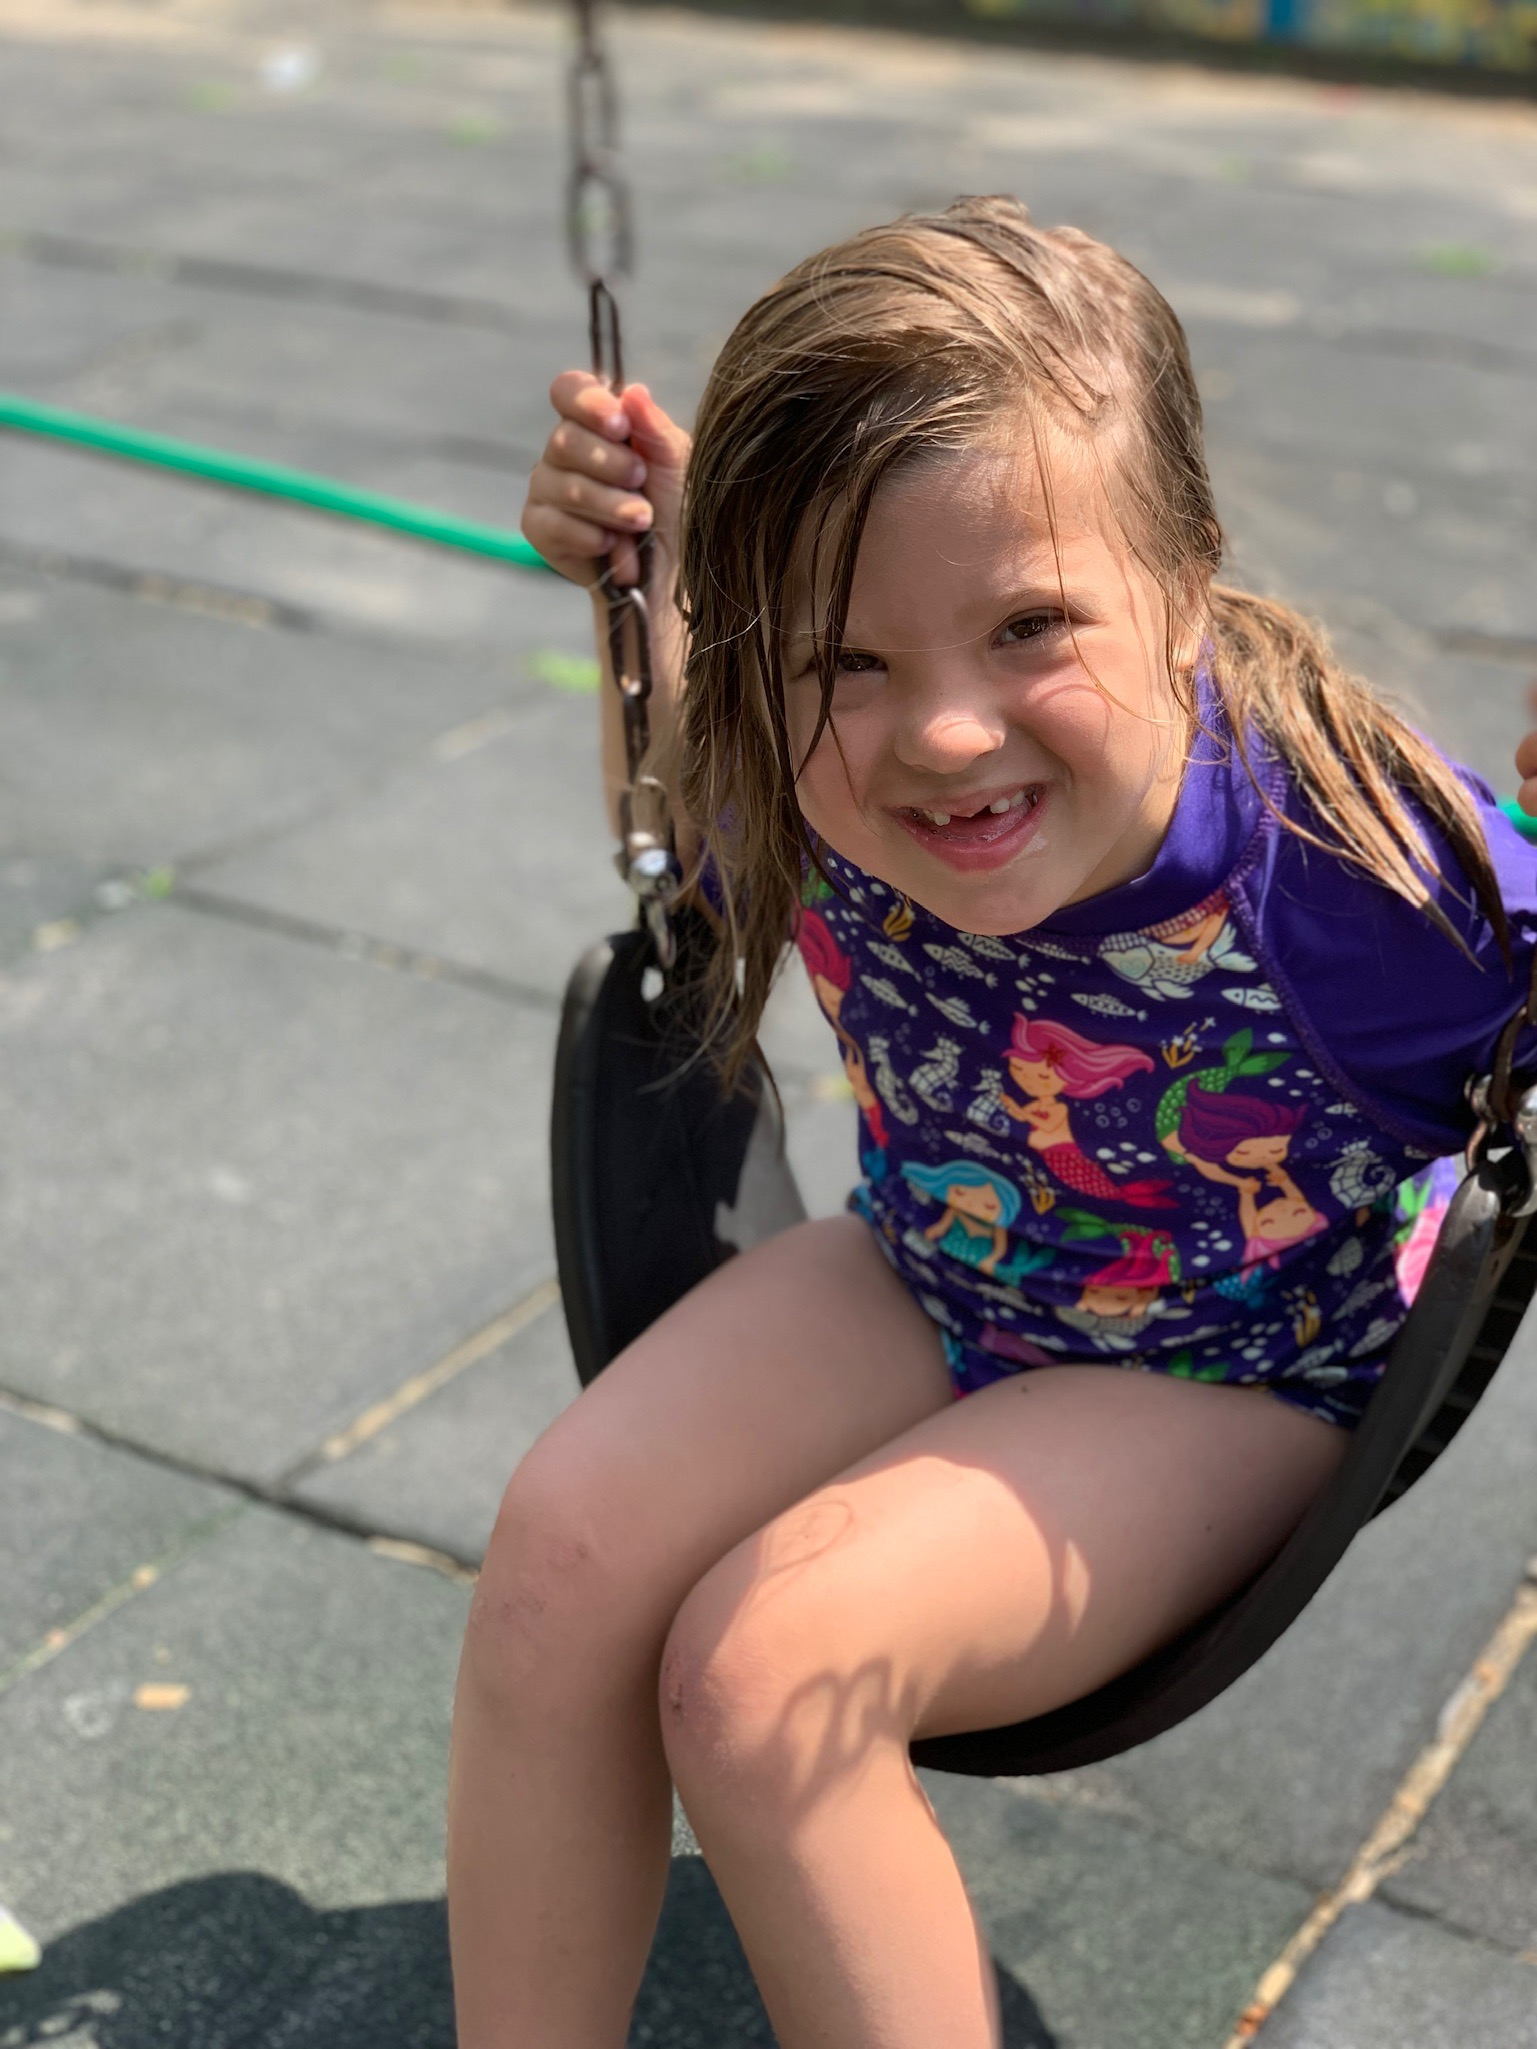 young girl with Down syndrome in a bathing suit on a swing